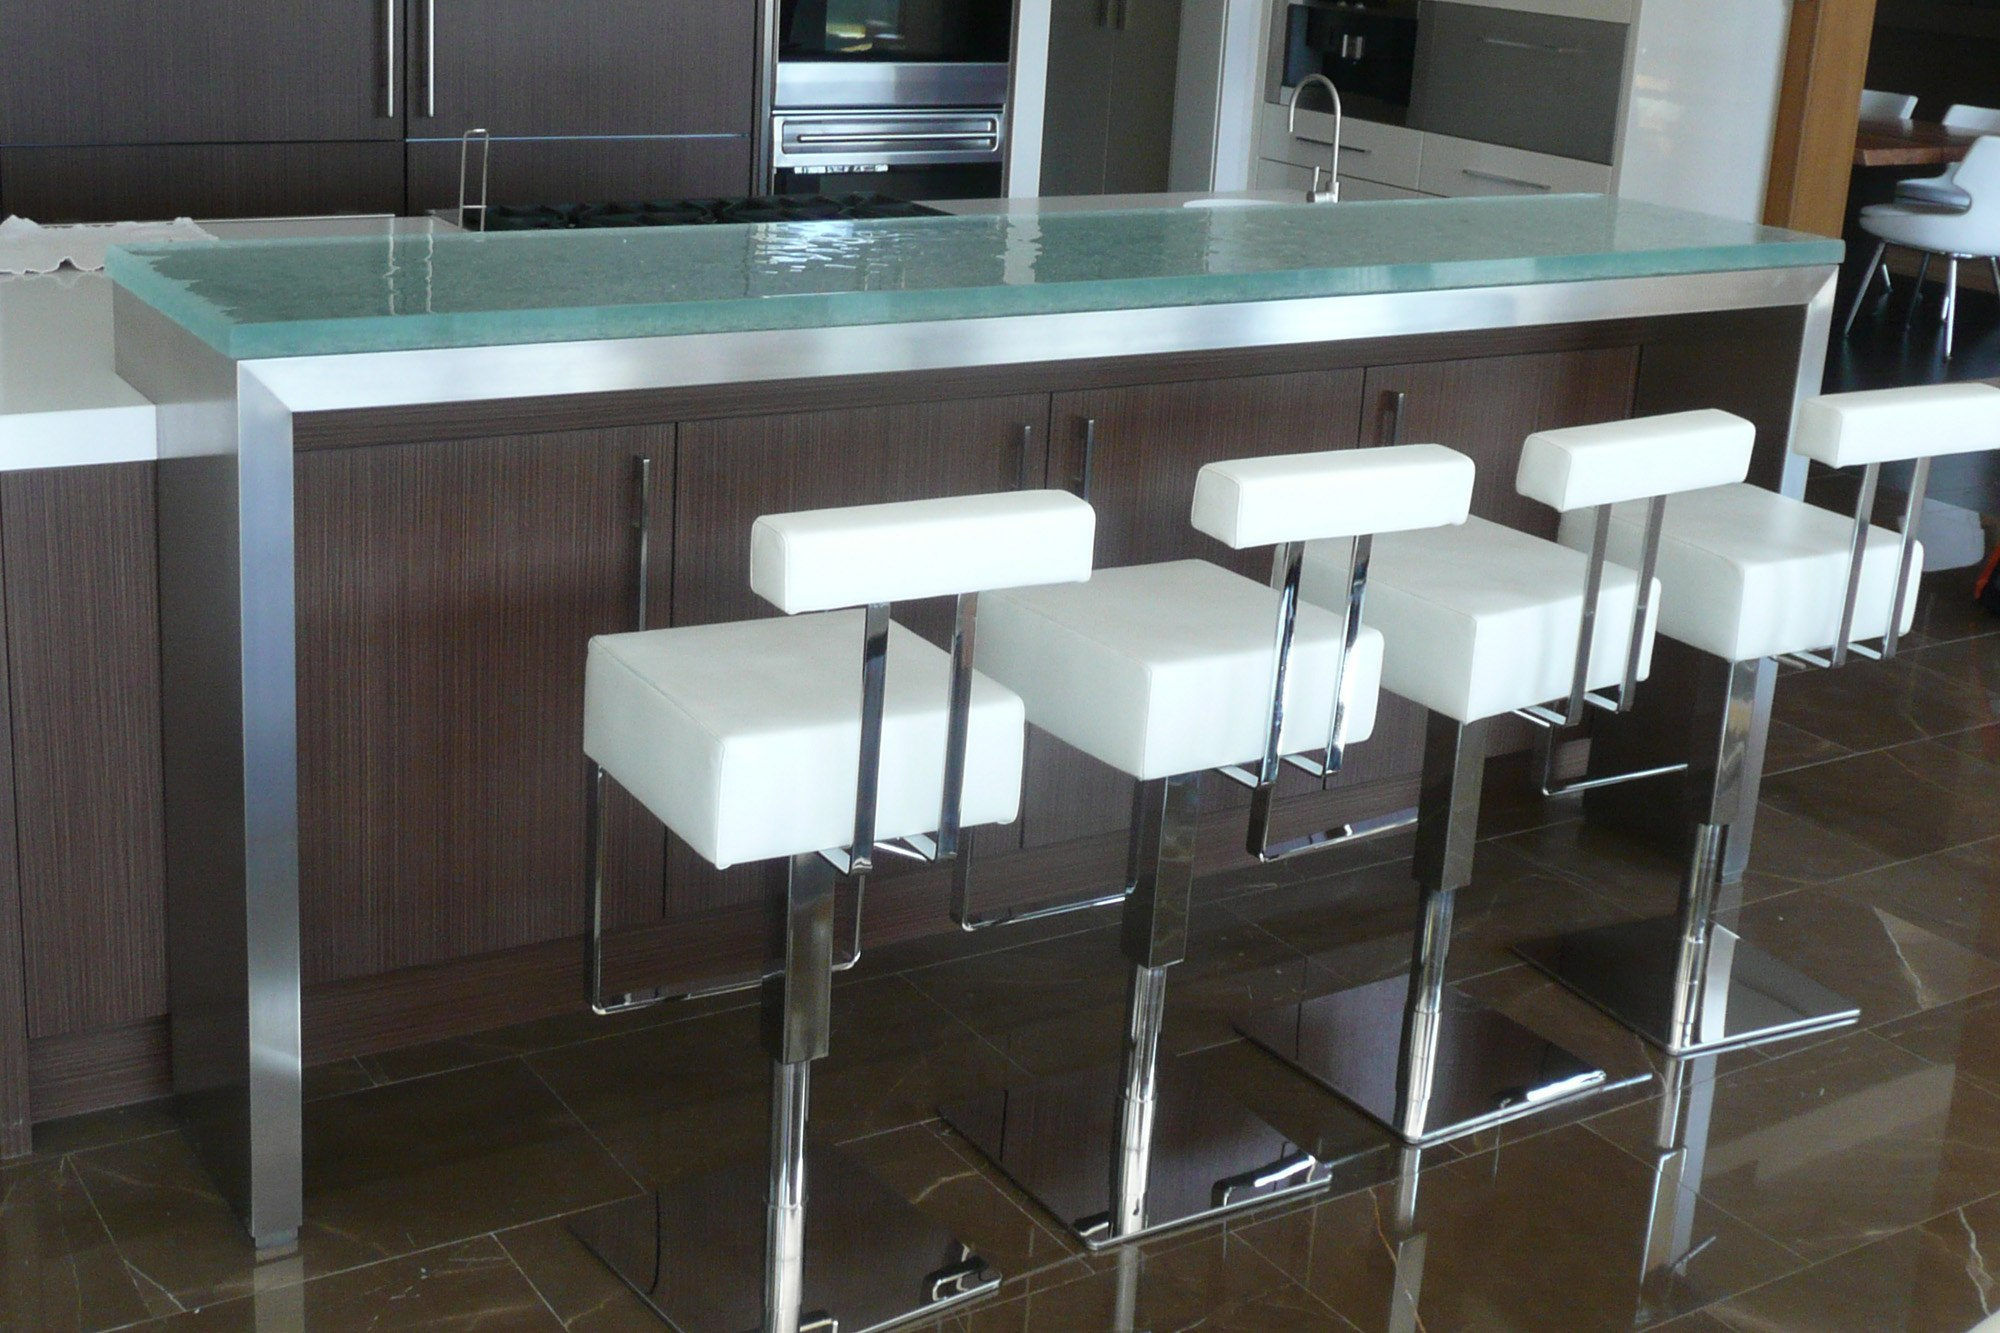 touch glass for ultimate decor homesthetics countertops kitchen luxury the tempered your